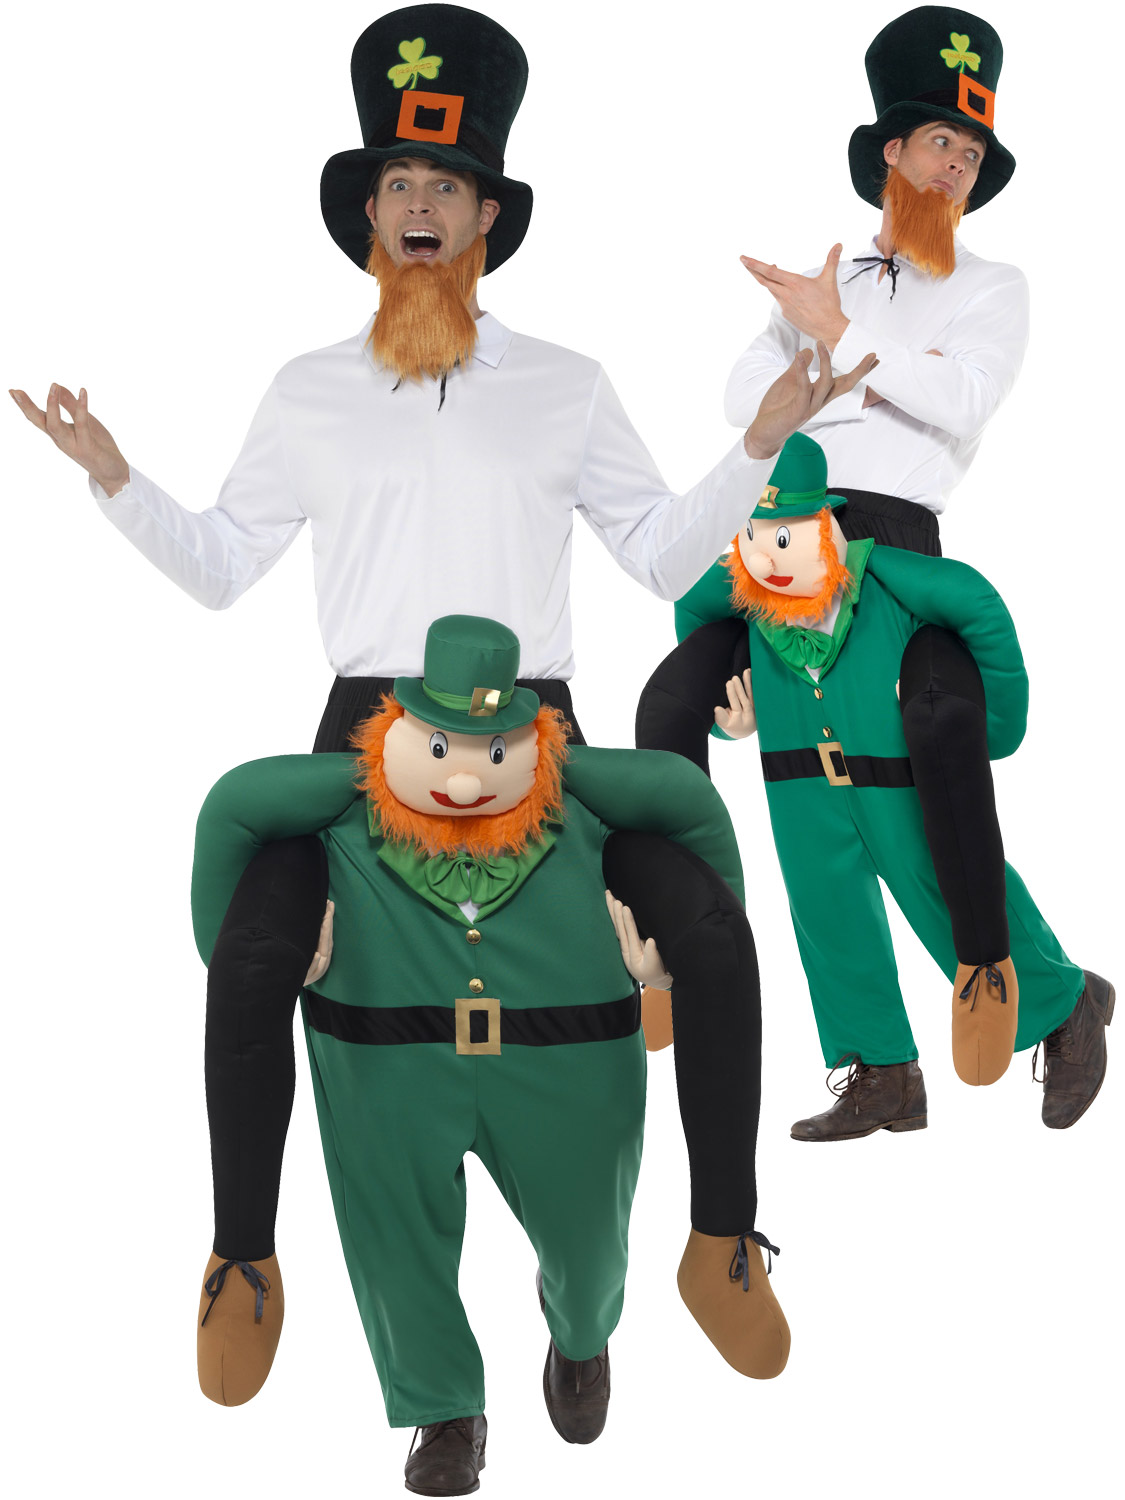 593aa75b4 Are you dressing up for St Patricks Day? This Leprechaun Piggy Back Costume  will sure make you stand out from the crowd!